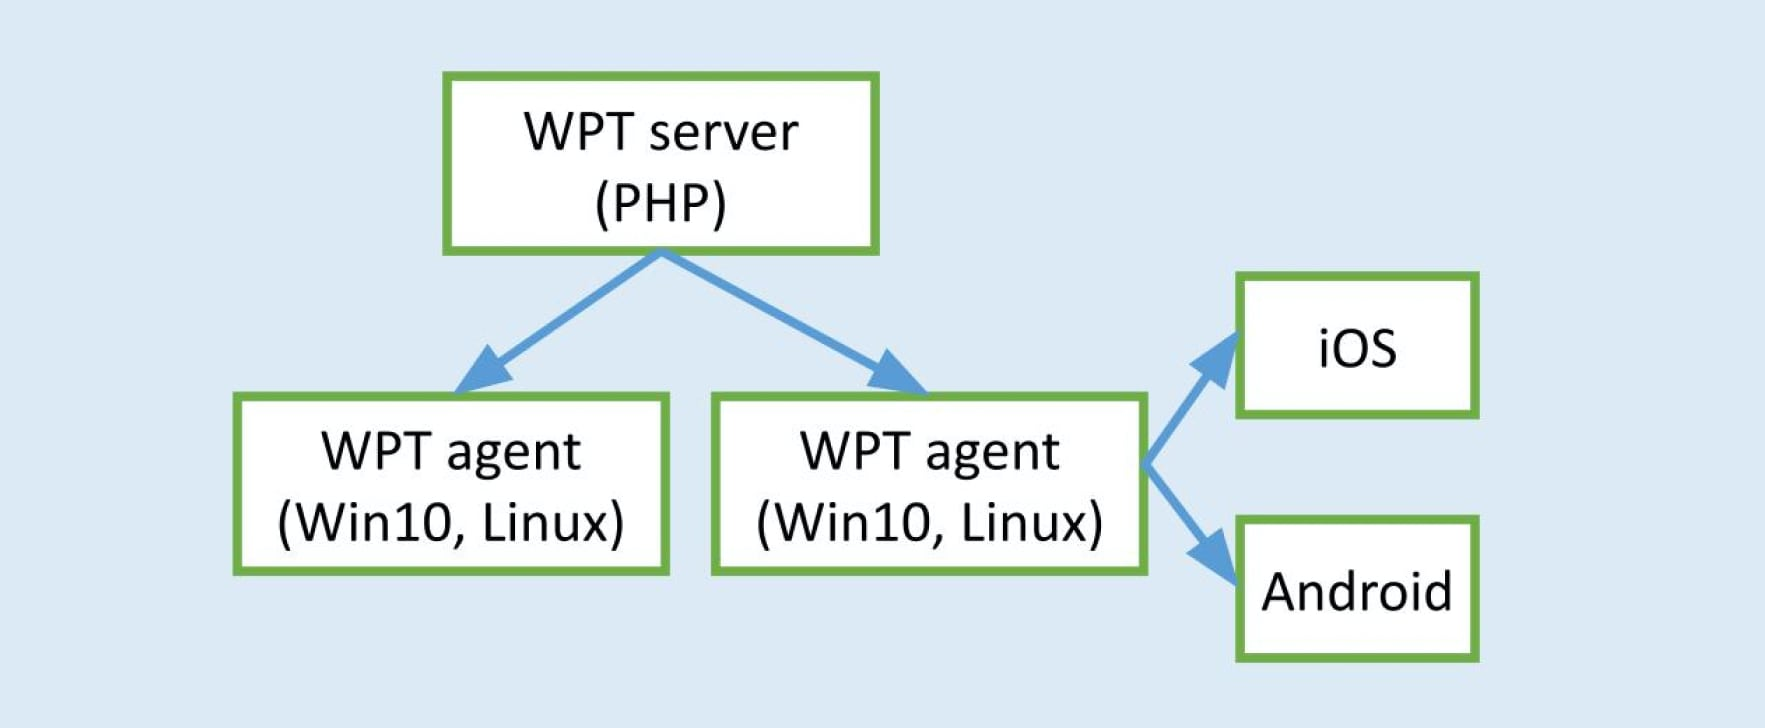 The diagram showing the WebPageTest architecture